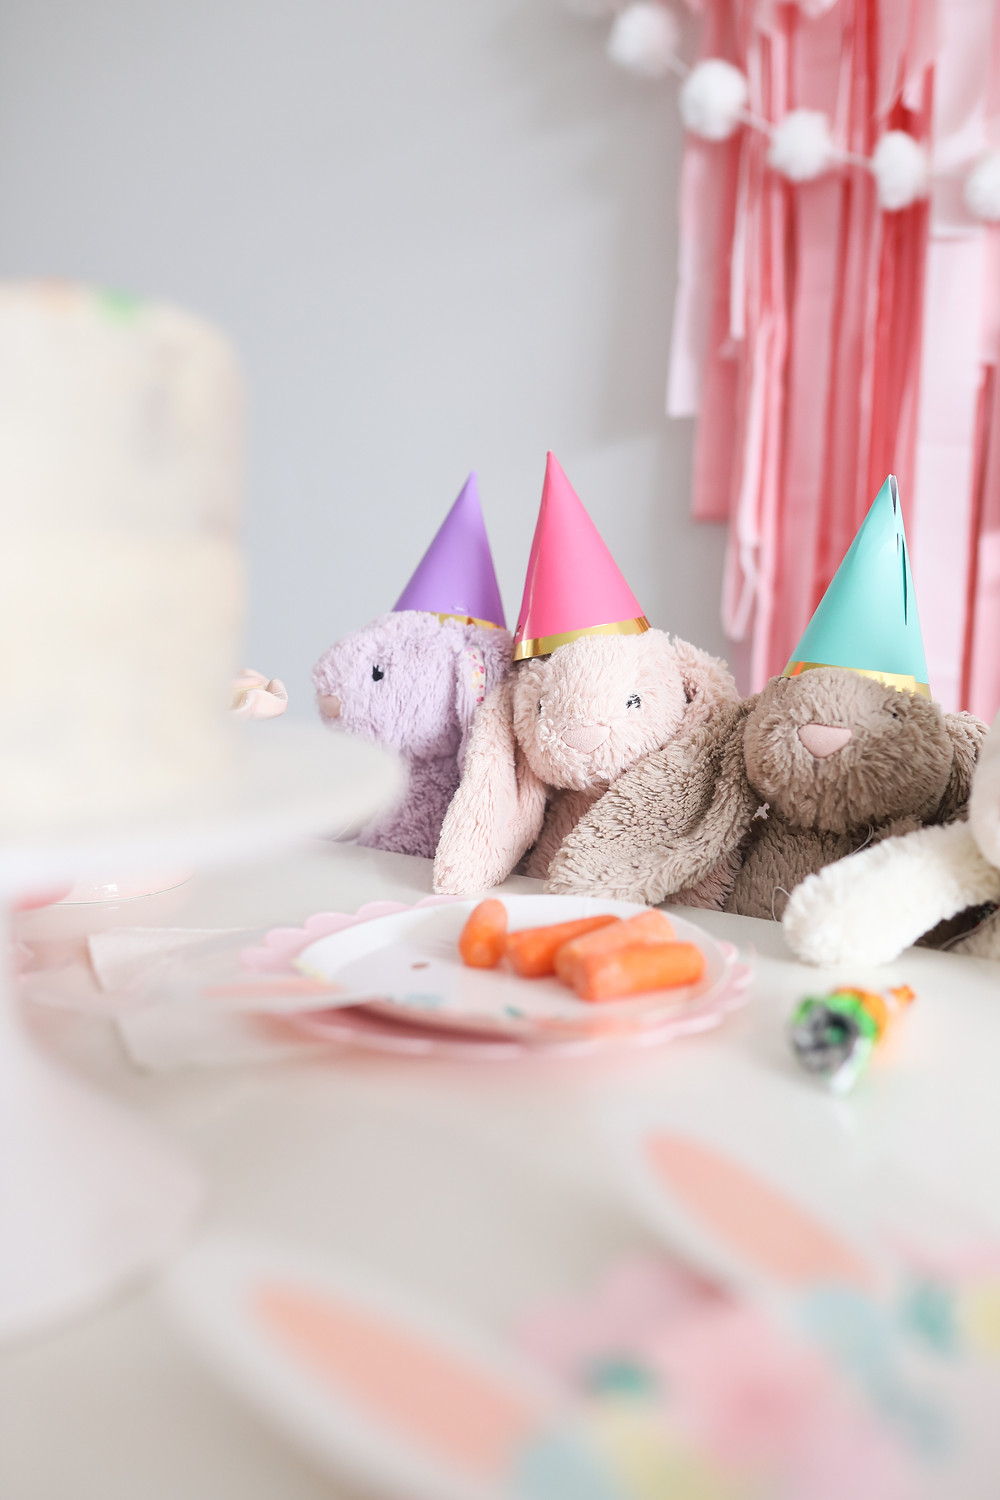 Pink and purple bunny stuffed animals wearing party hats at a Easter birthday celebration.